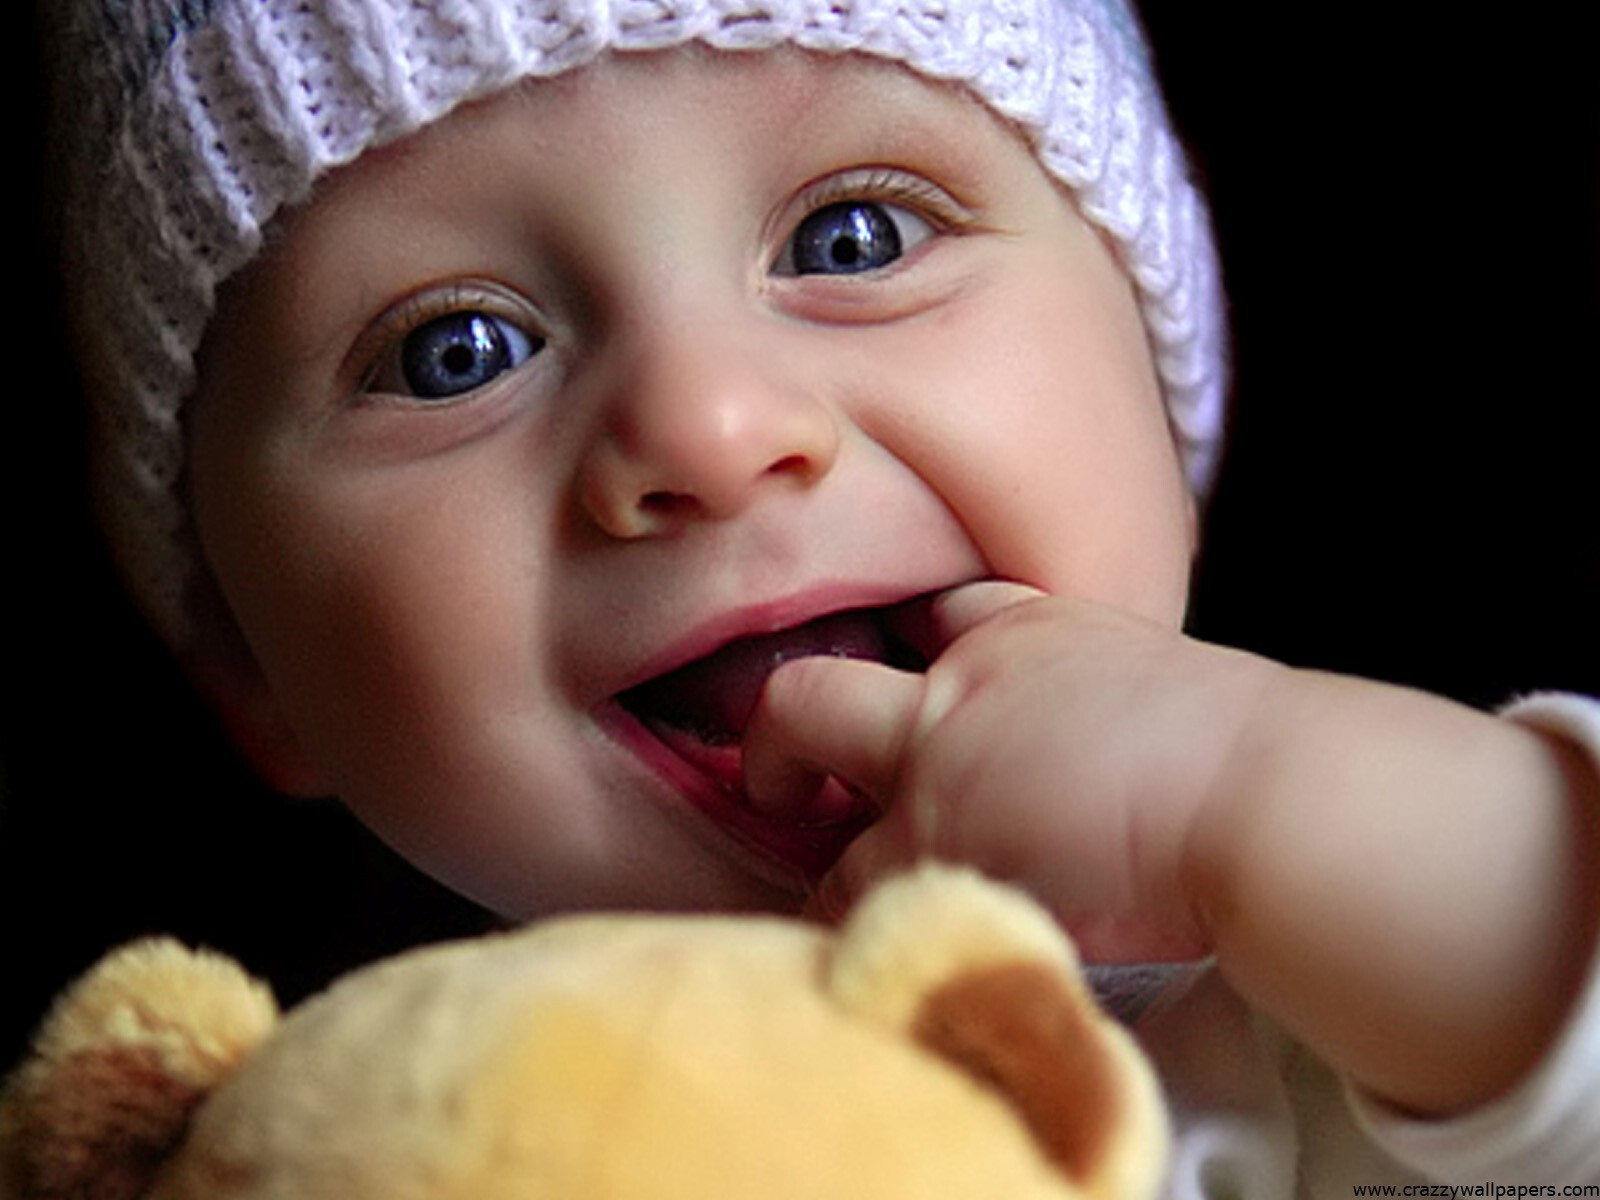 Cute Baby Child Playing With Doll Wallpaper Hd Wallpapers